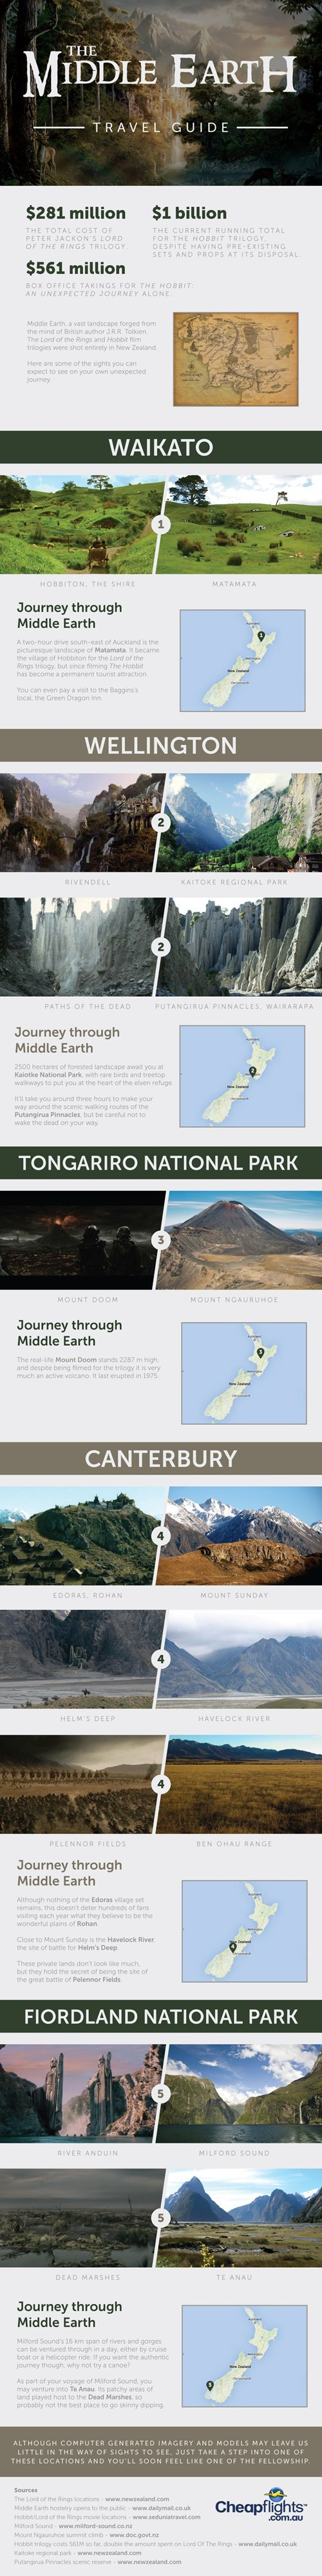 new zealand infographic Lord of the Rings Travel - 7897625088